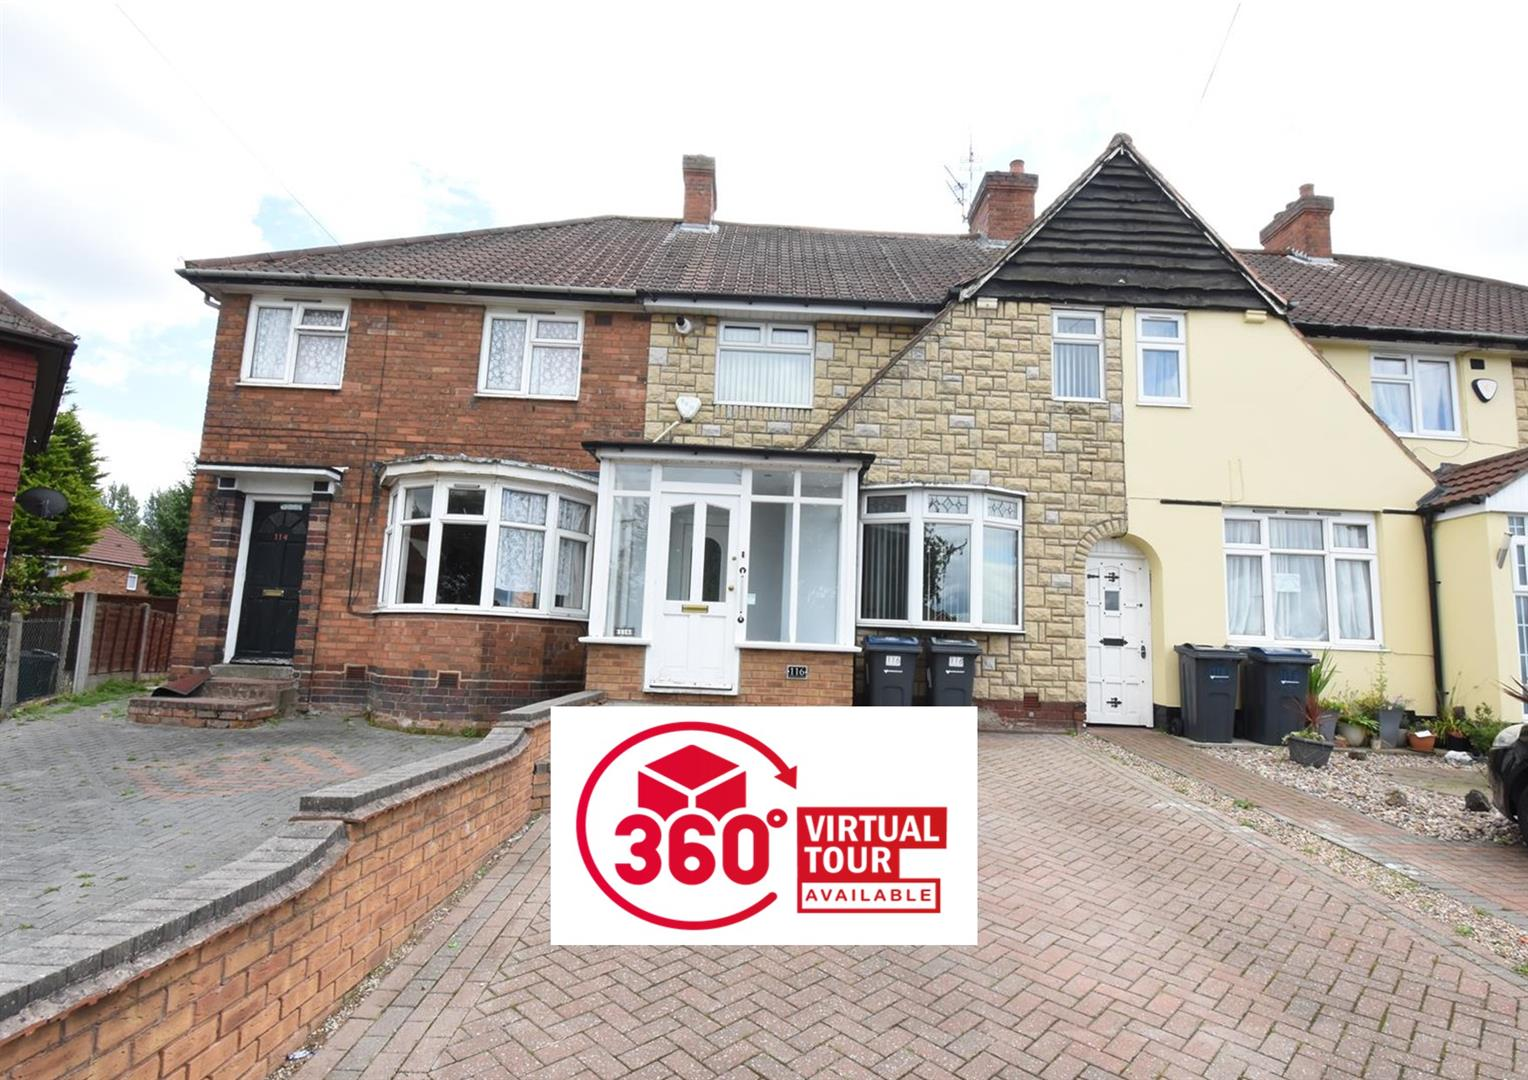 2 bed house for sale in Northleigh Road, Birmingham - Property Image 1